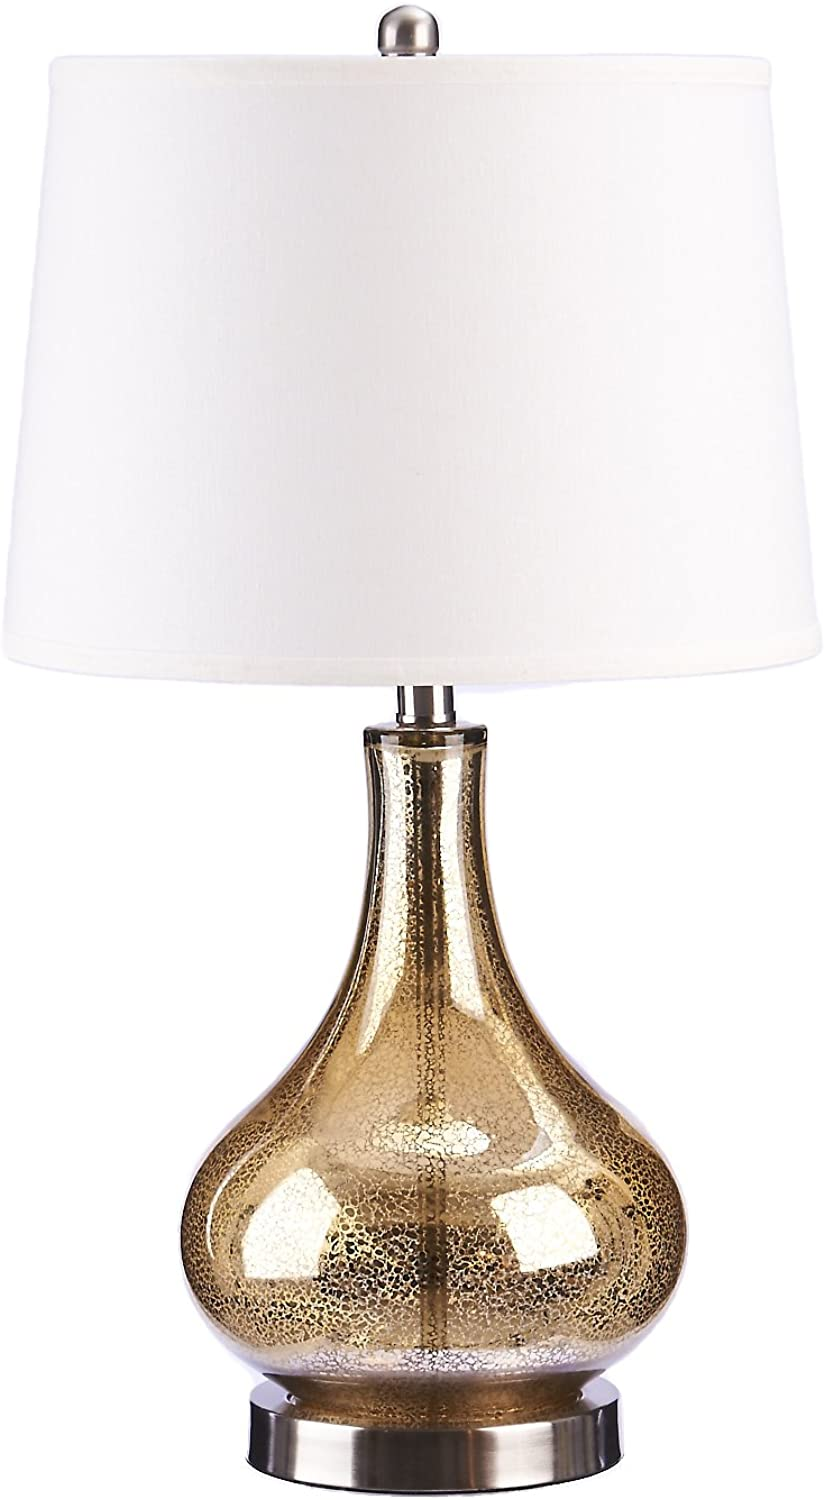 Catalina Lighting 19560-004 Transitional 3-Way Glass Gourd Table Lamp with Linen Shade 25  gold Discontinued